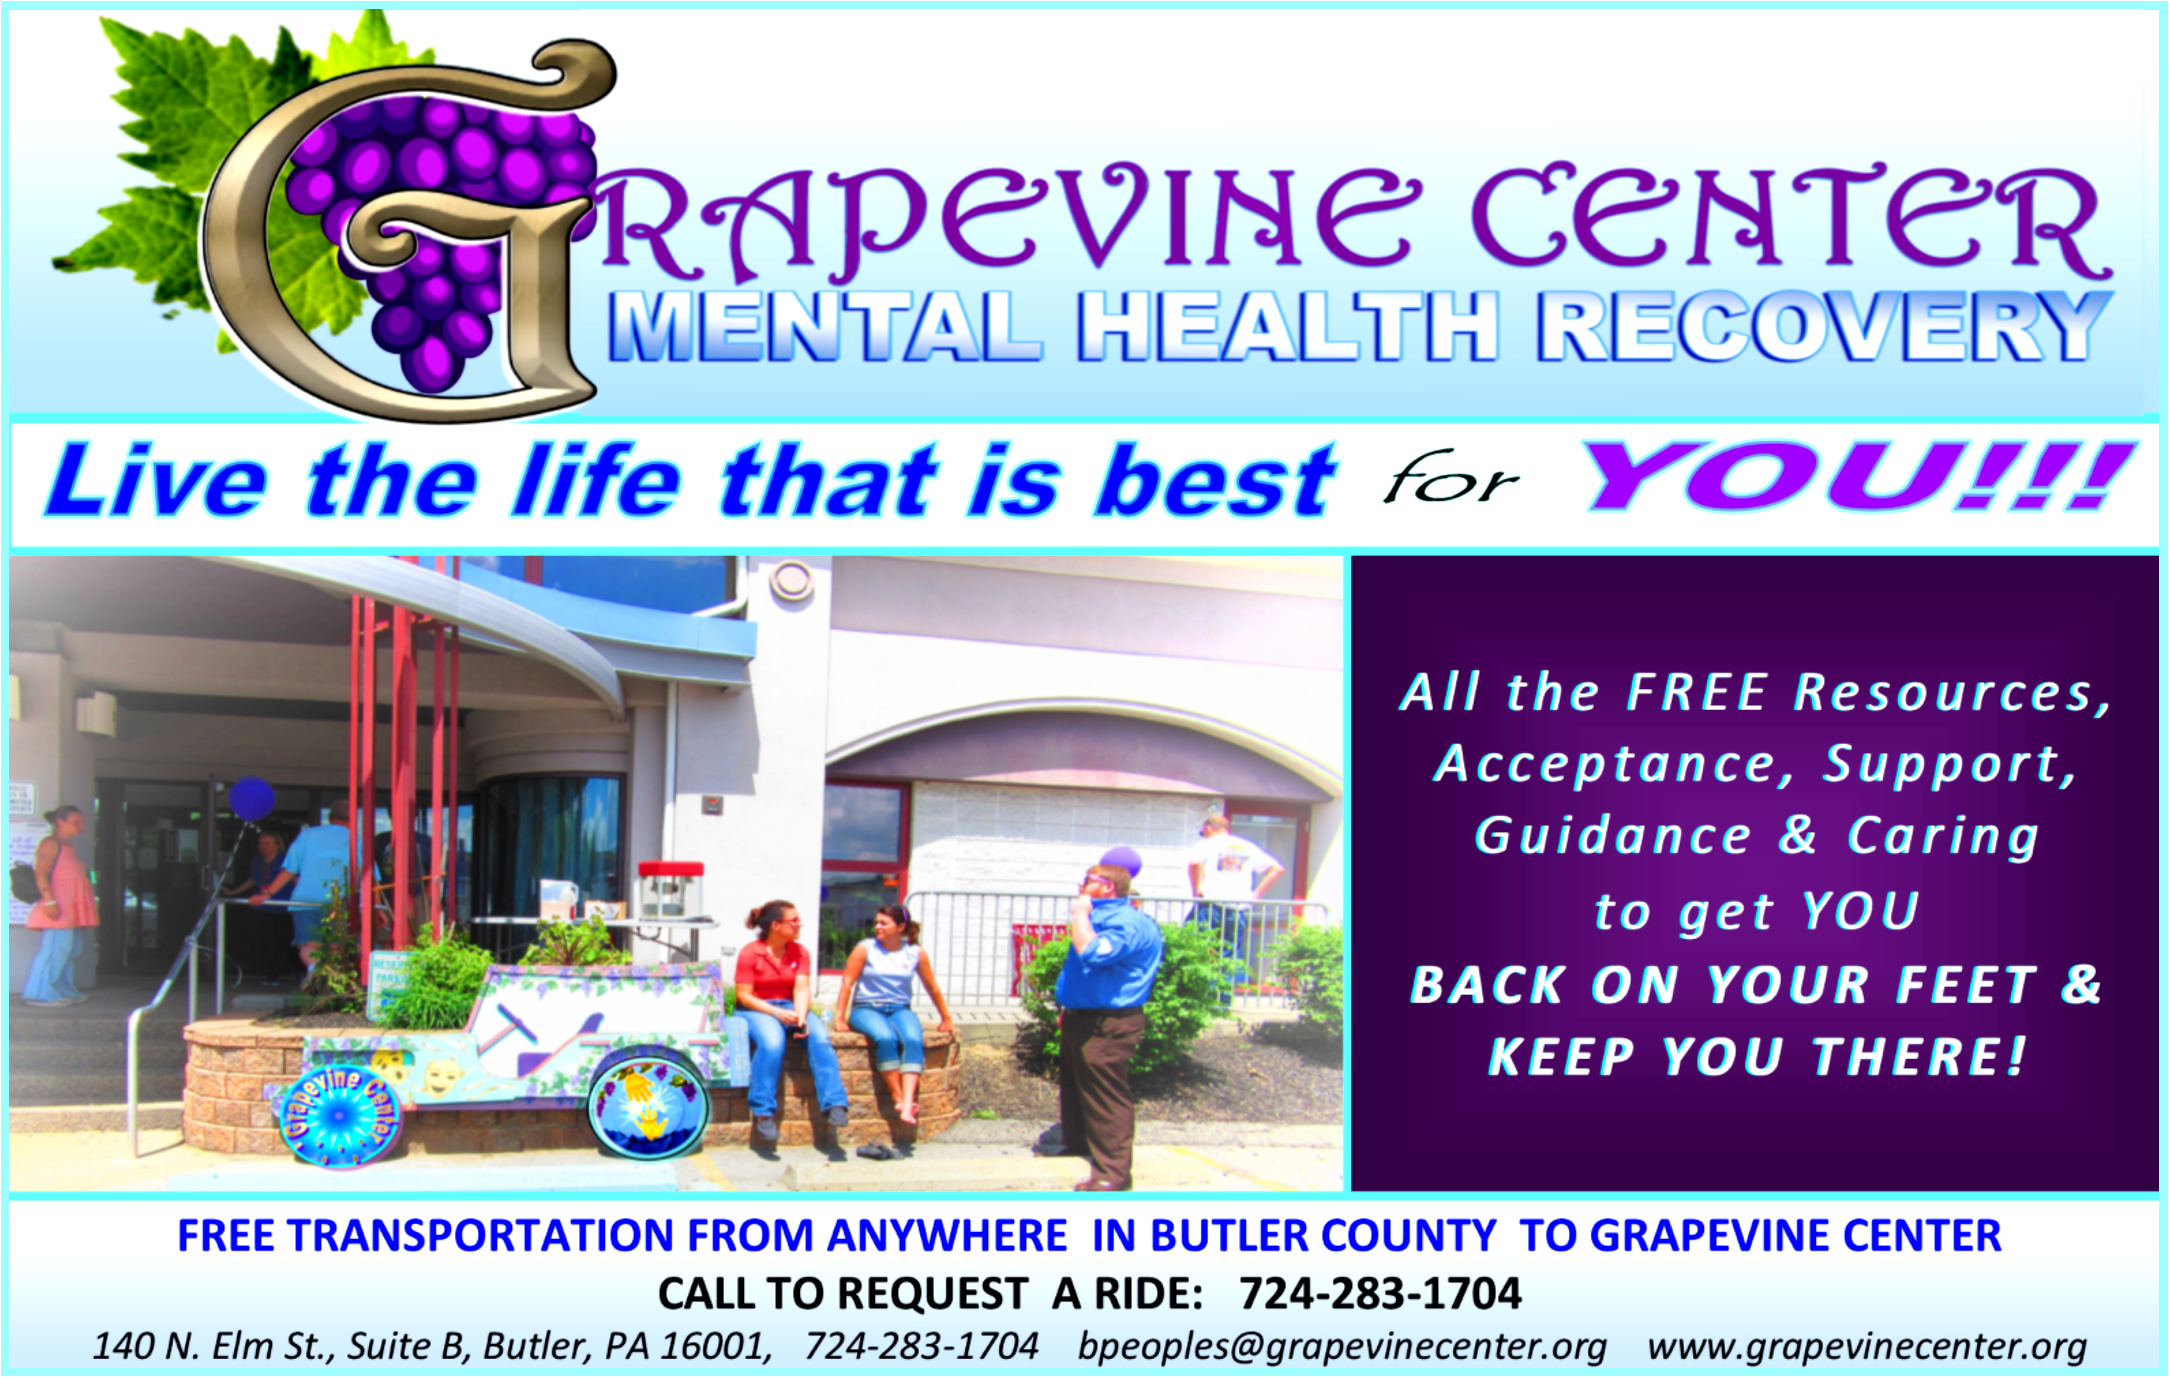 Grapevine Center Ad FREE Transport to Grapevine Center provided